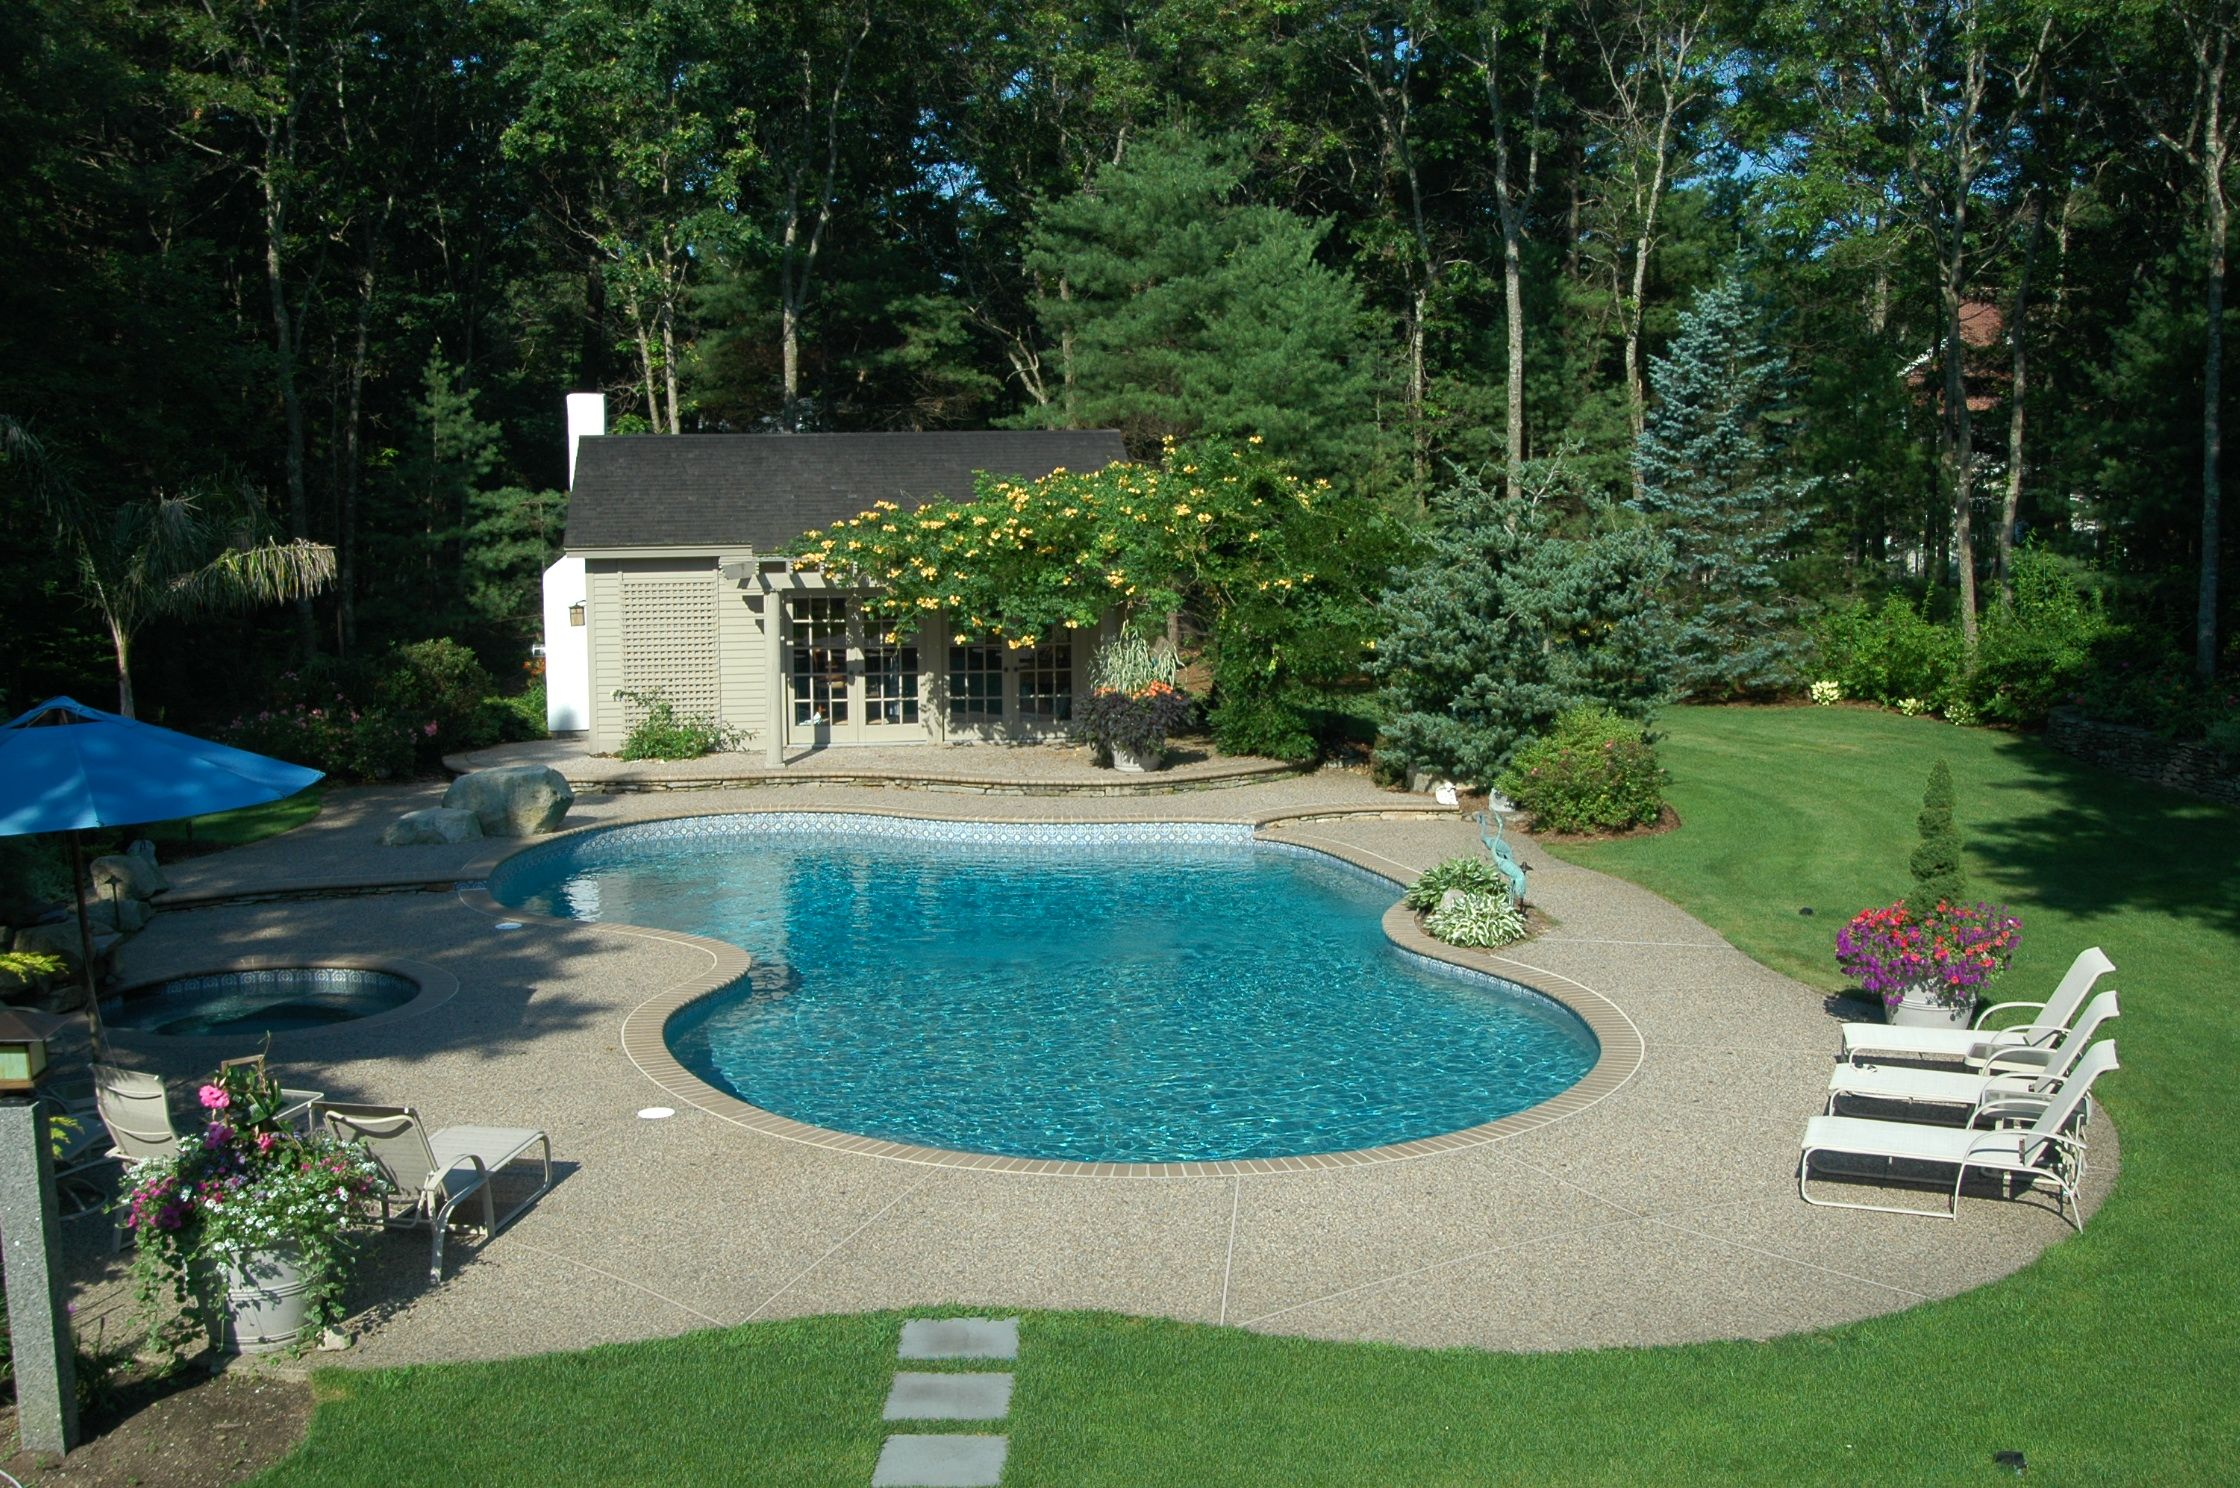 What A Lovely Pool My Wife And I Have A